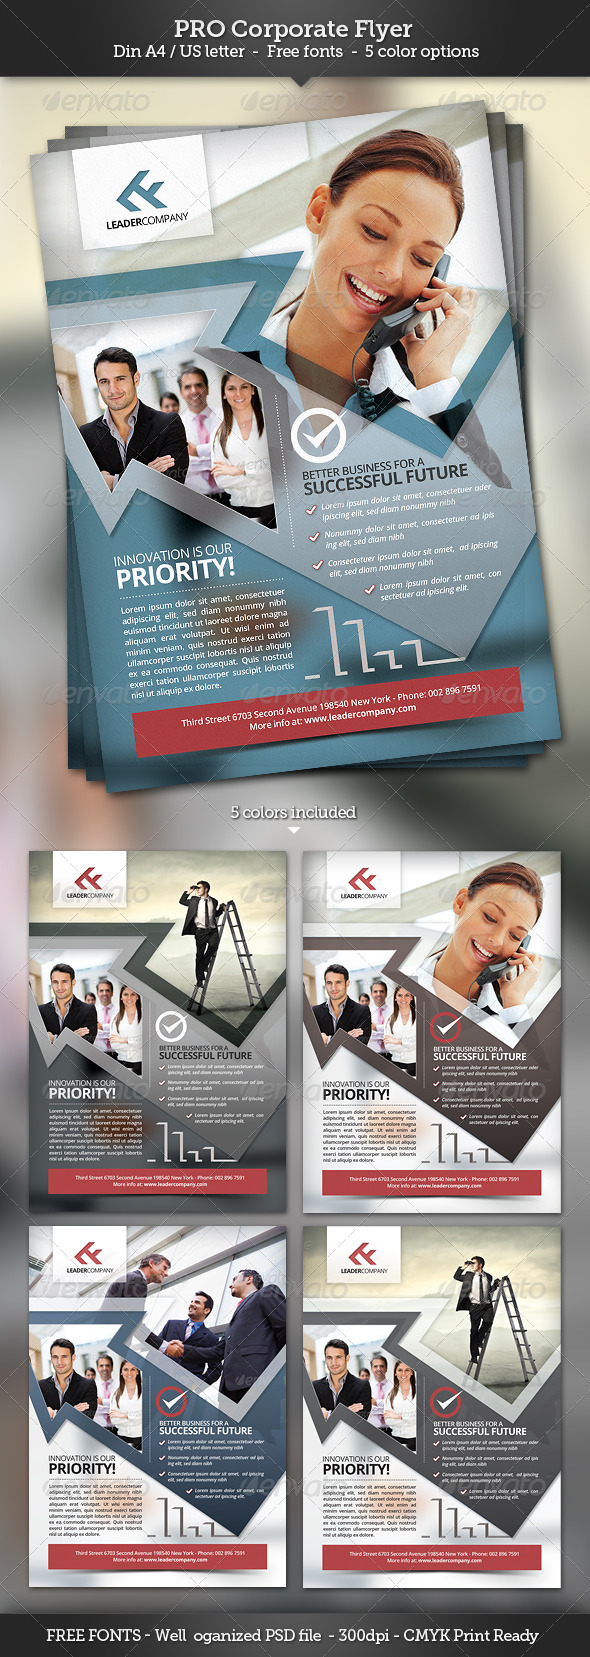 GraphicRiver Pro Corporate Flyer Template 3168398